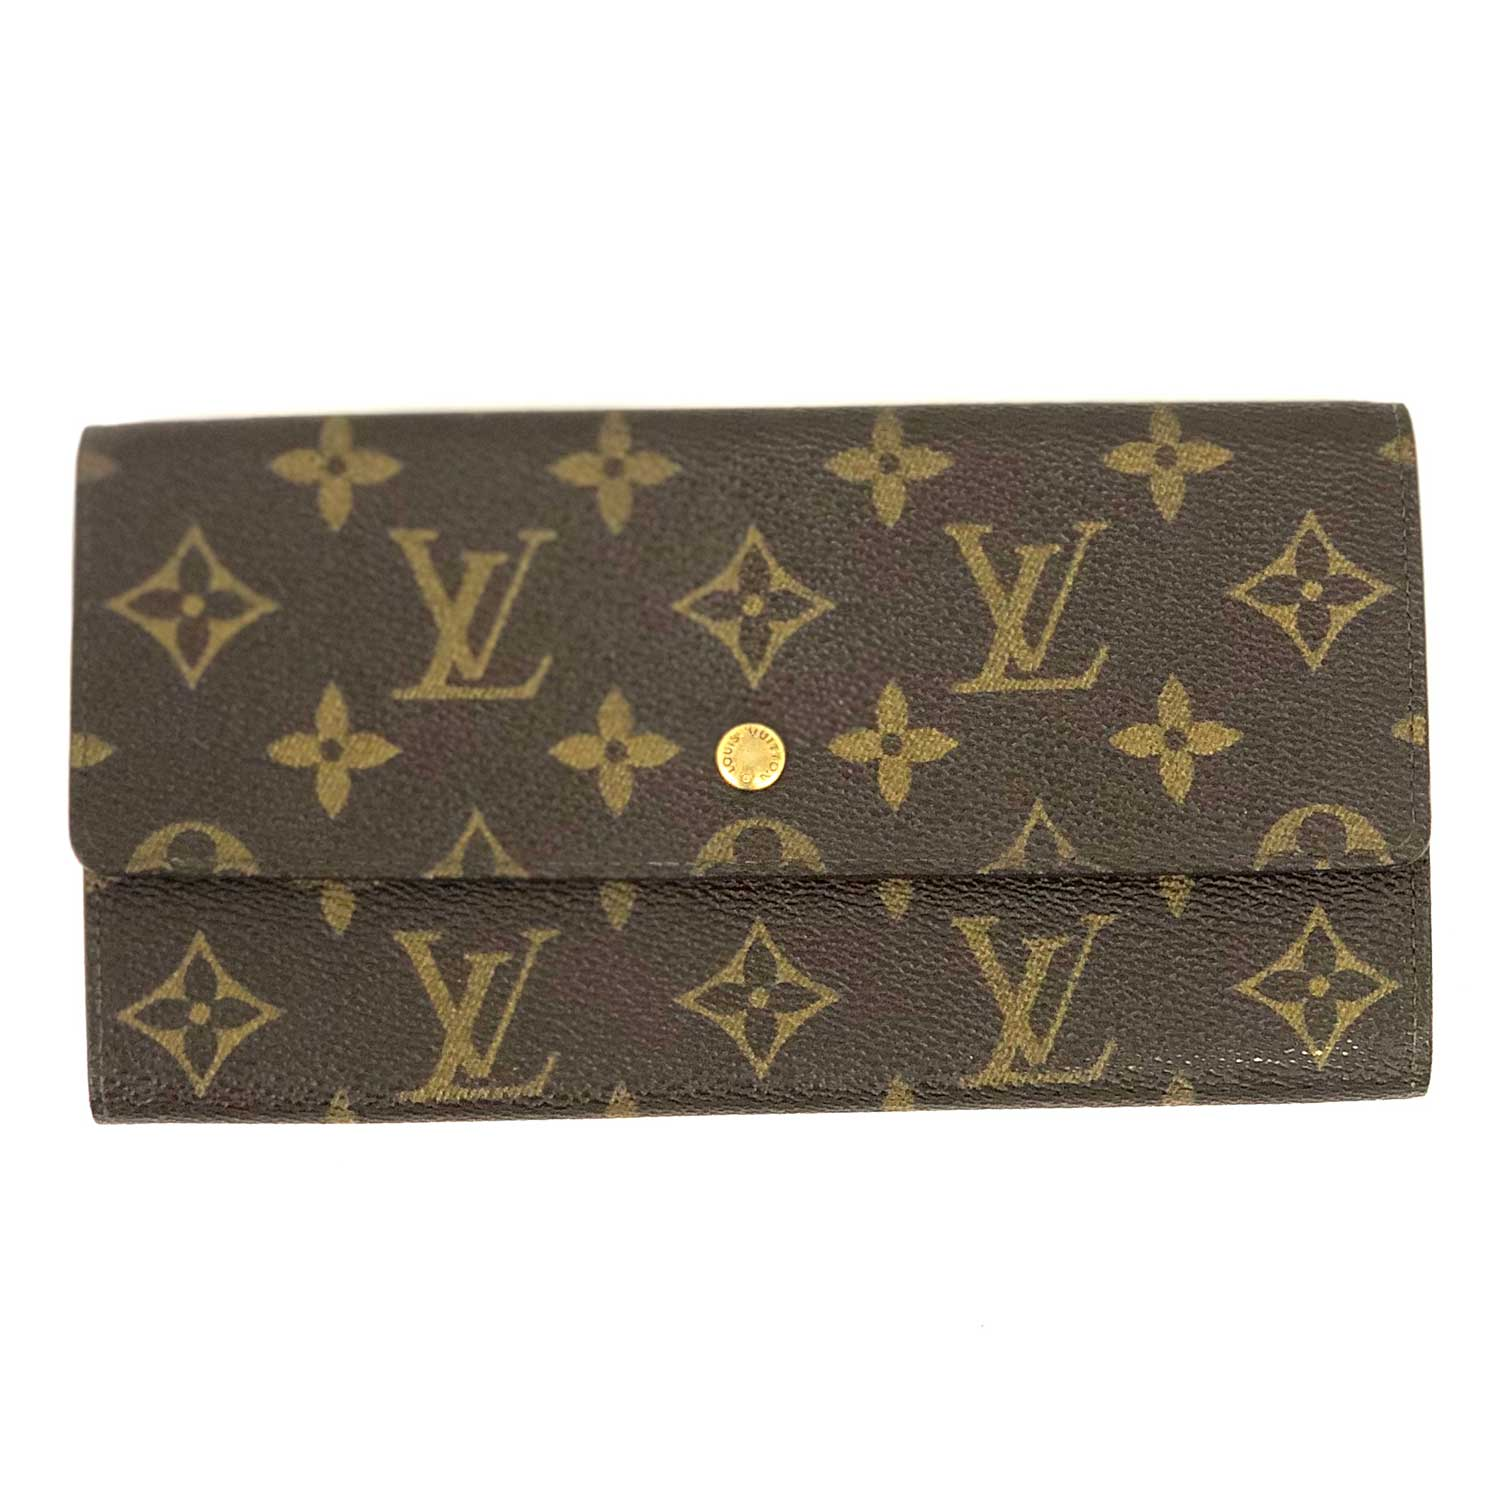 Carteira Louis Vuitton Monograma